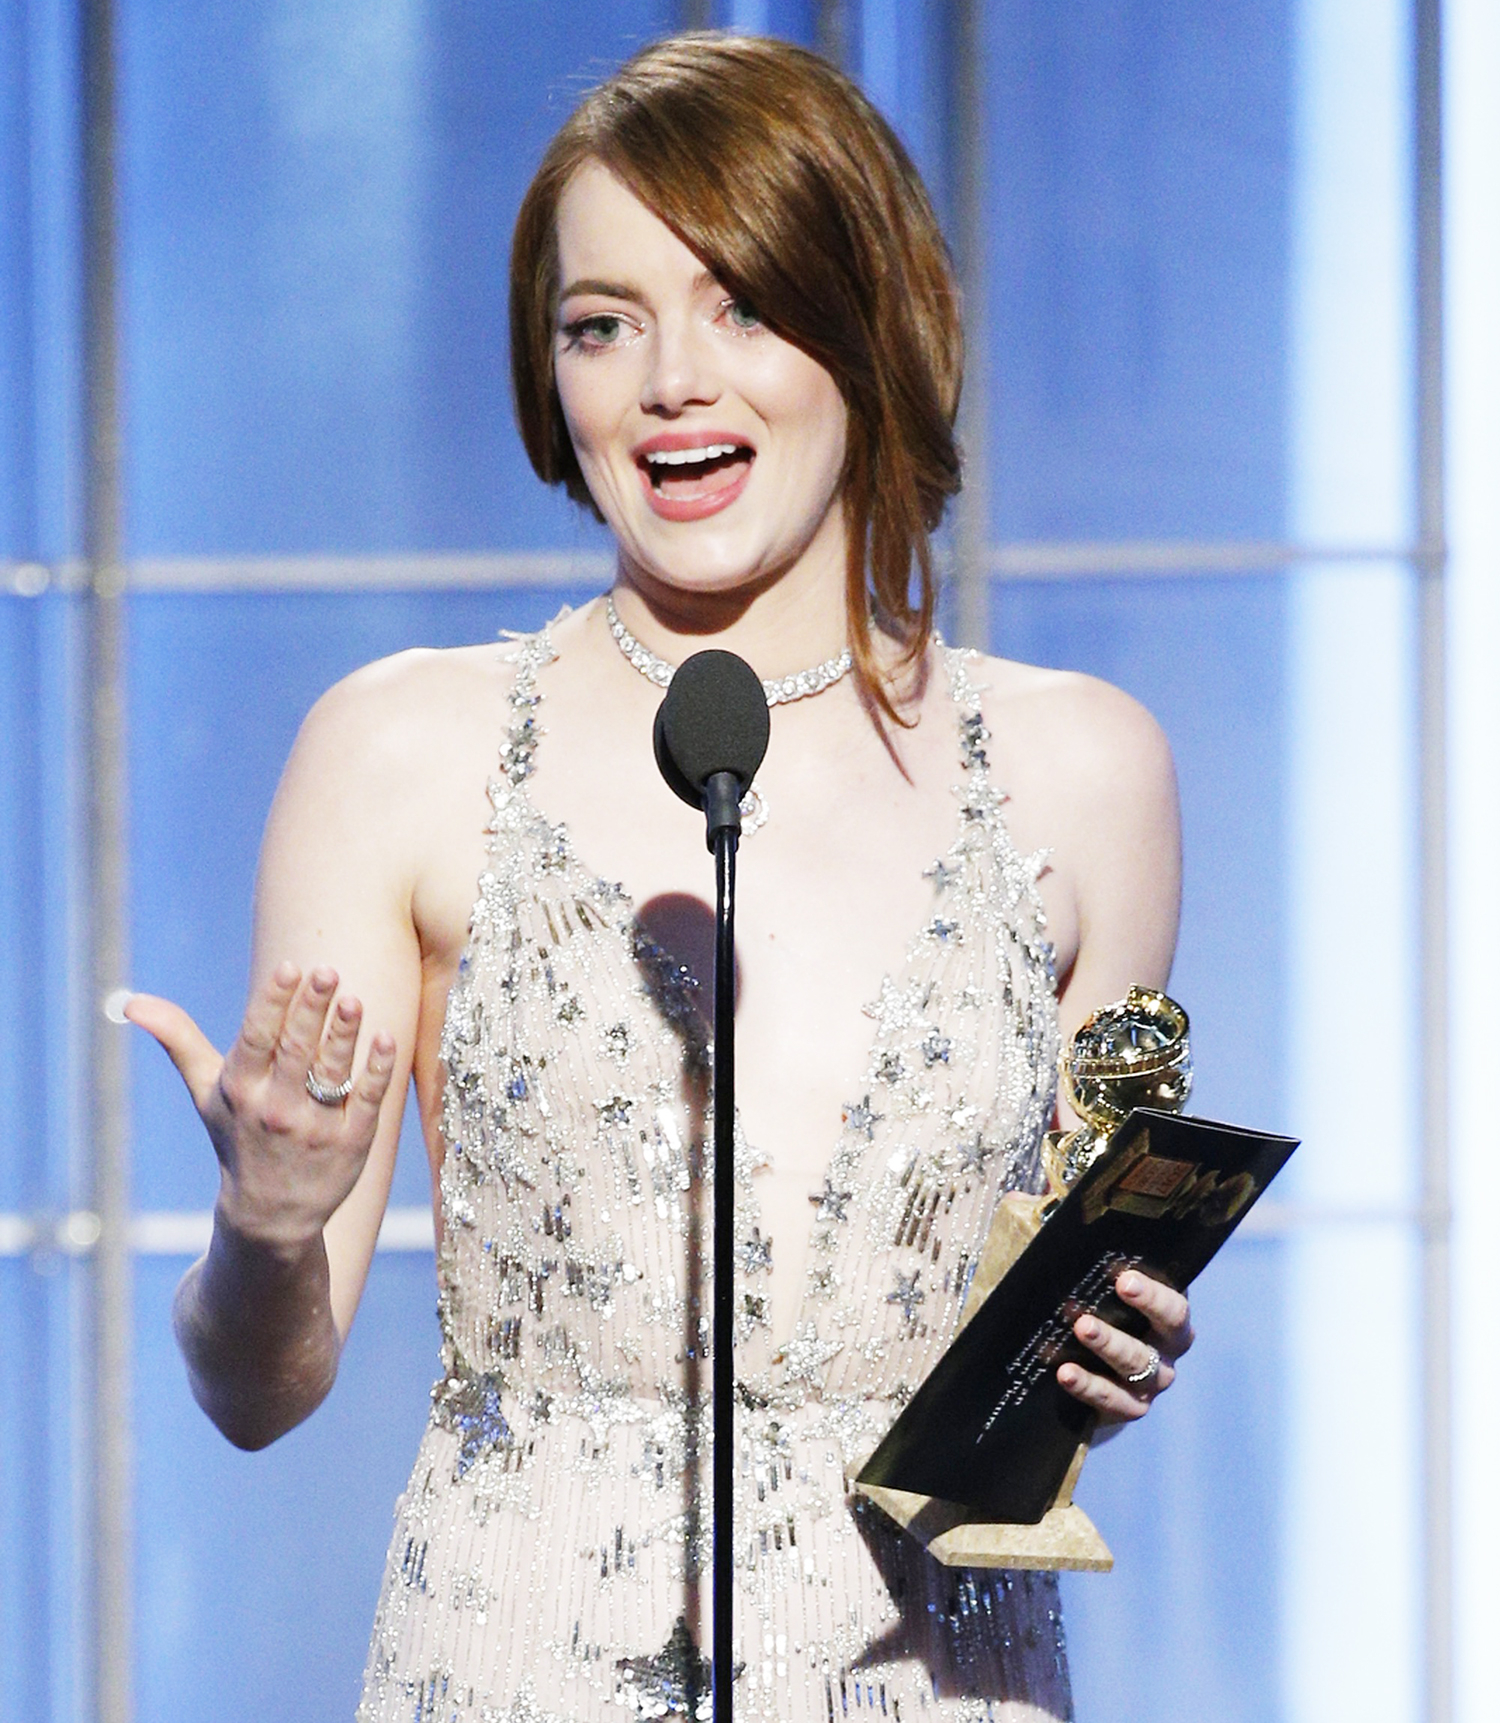 Emma Stone accepts the award for Best Actress in a Motion Picture - Musical or Comedy for her role in